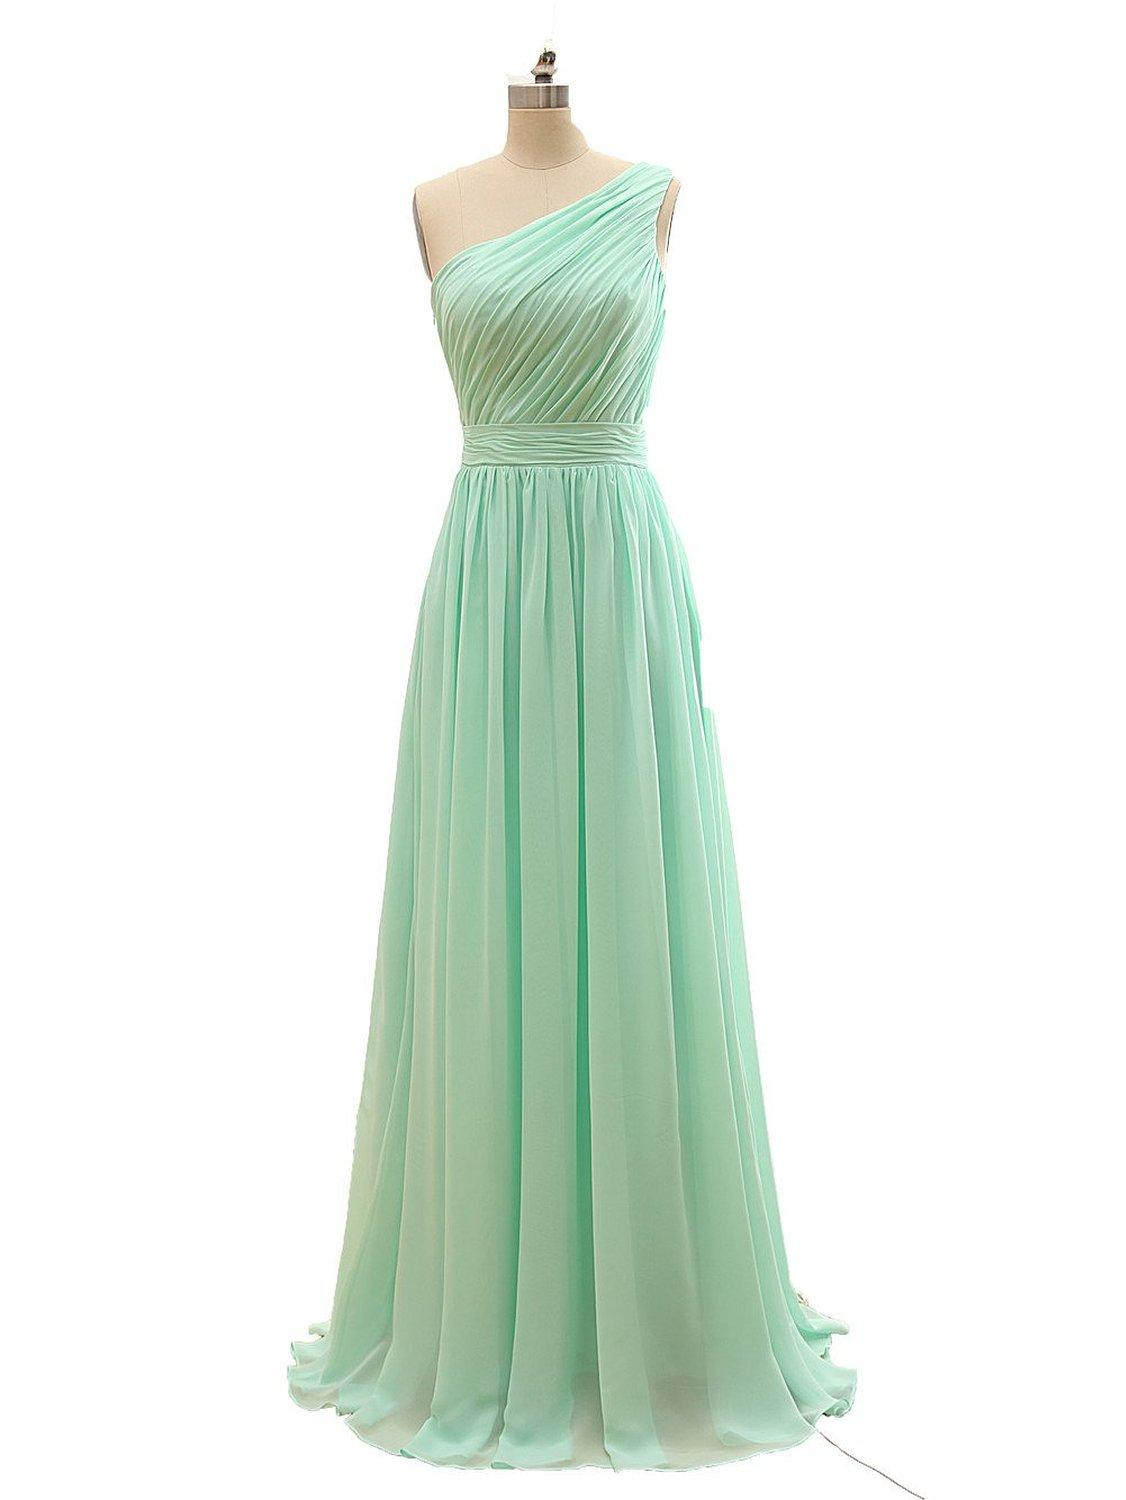 be9bb57aa0d New Arrival A Line Chiffon One Shoulder Bridesmaid Dresses 2018 Long Pleated  Floor Length Formal Party Gowns Bridesmaid Dresses 2018 Bridesmaid Dresses  ...